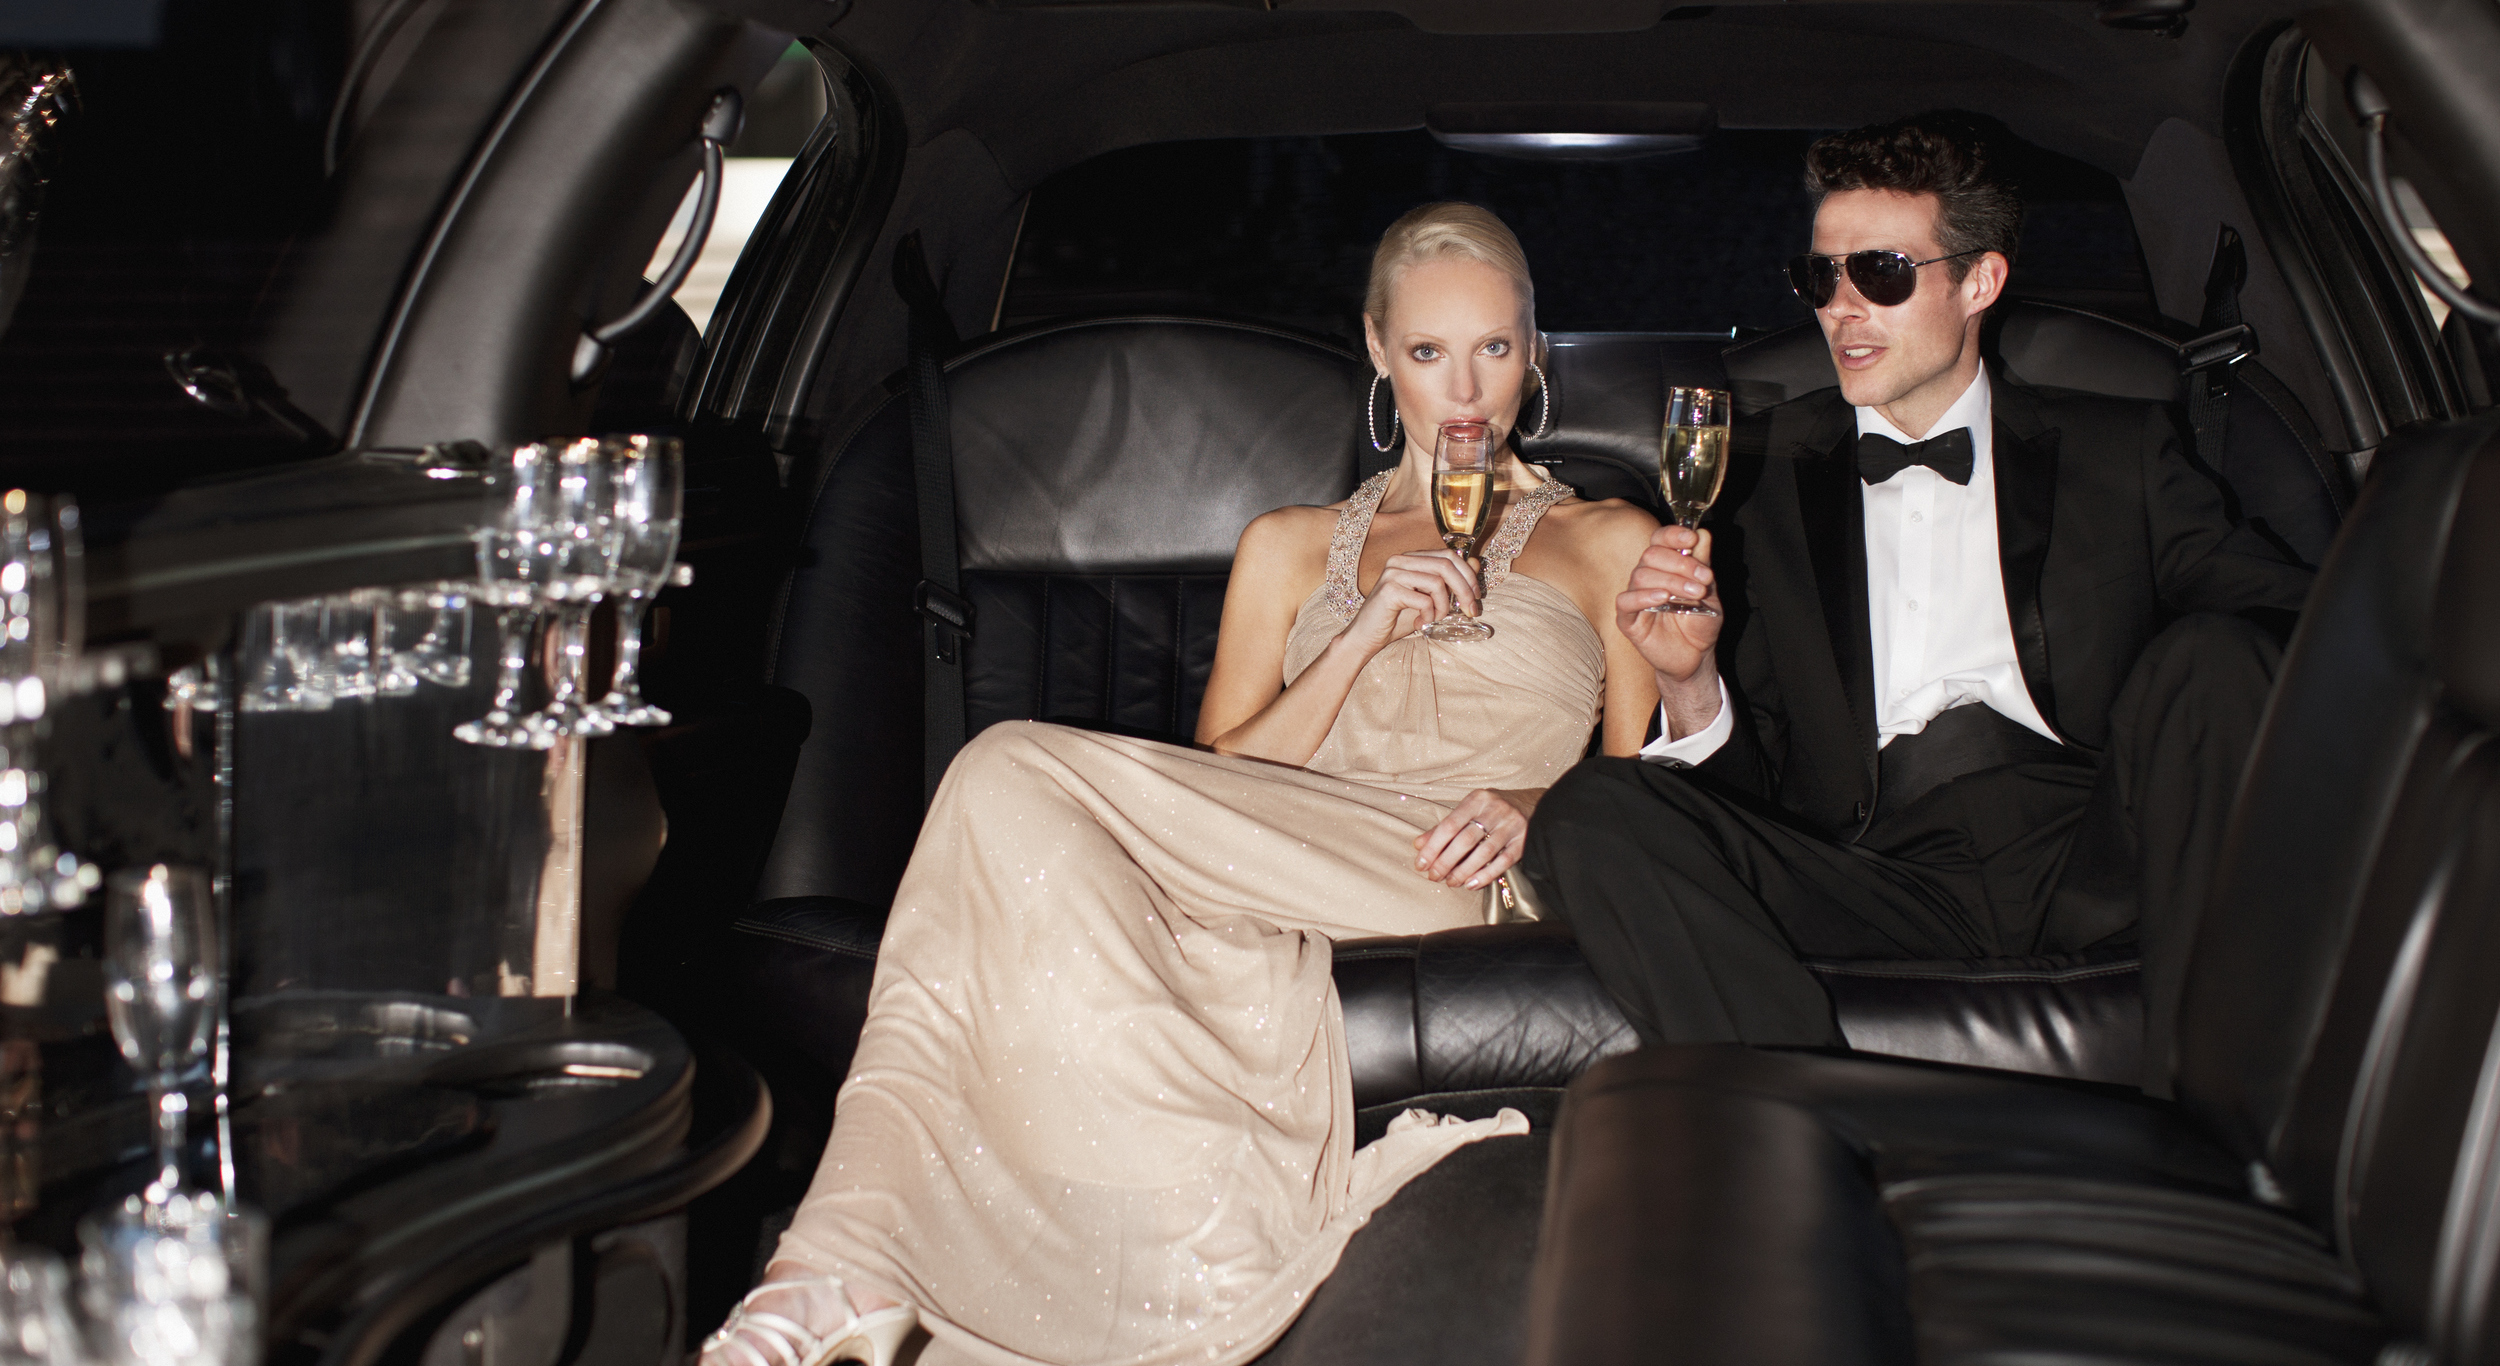 couple-drinking-champagne-in-limo-2